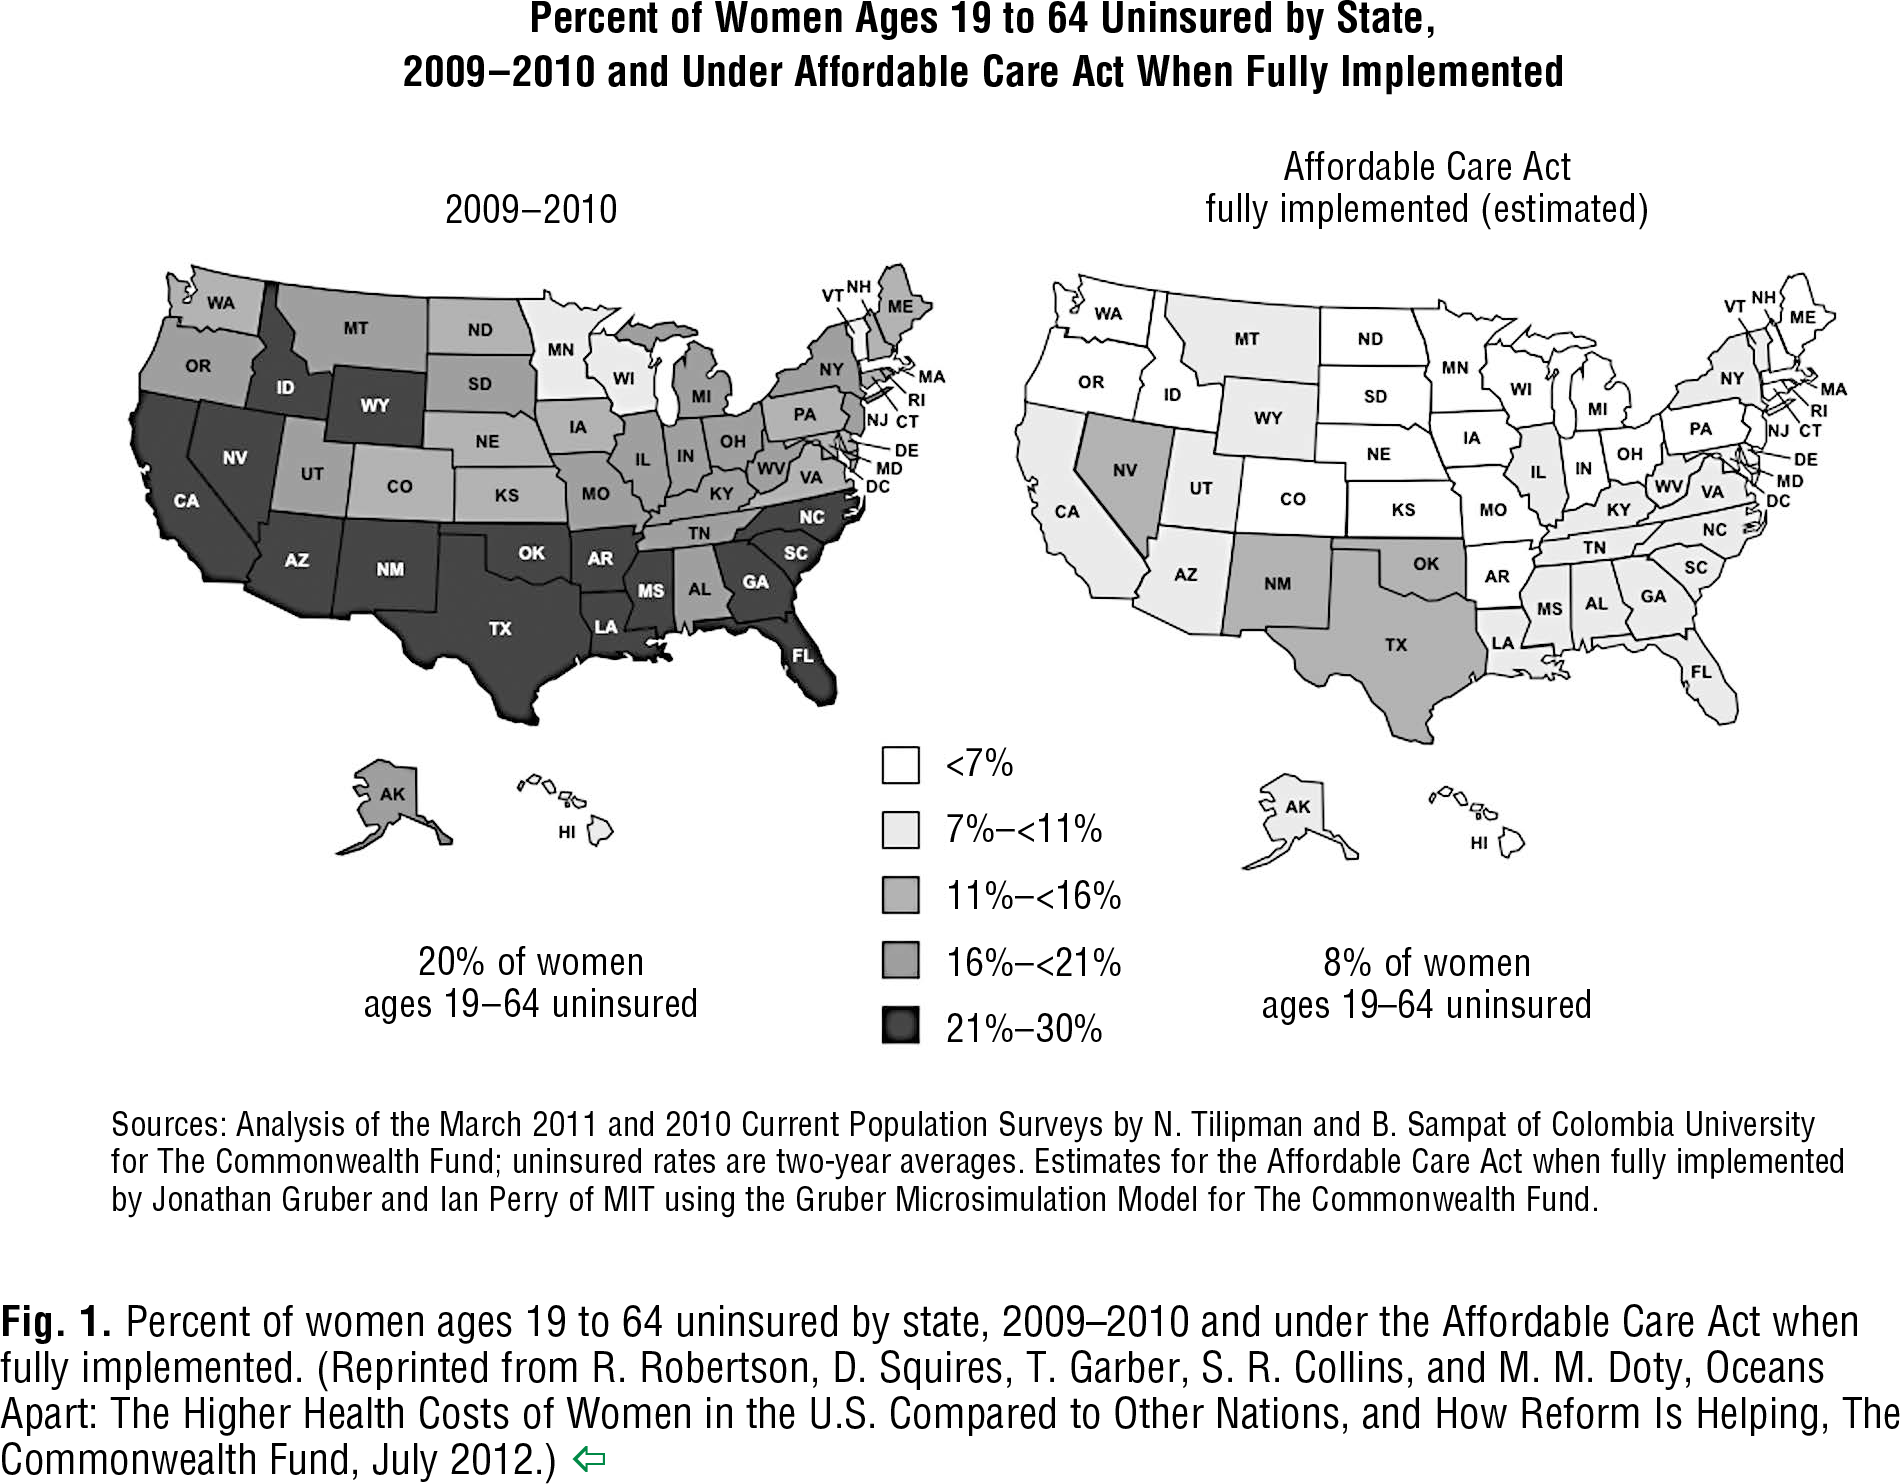 Benefits to Women of Medicaid Expansion Through the Affordable Care Act